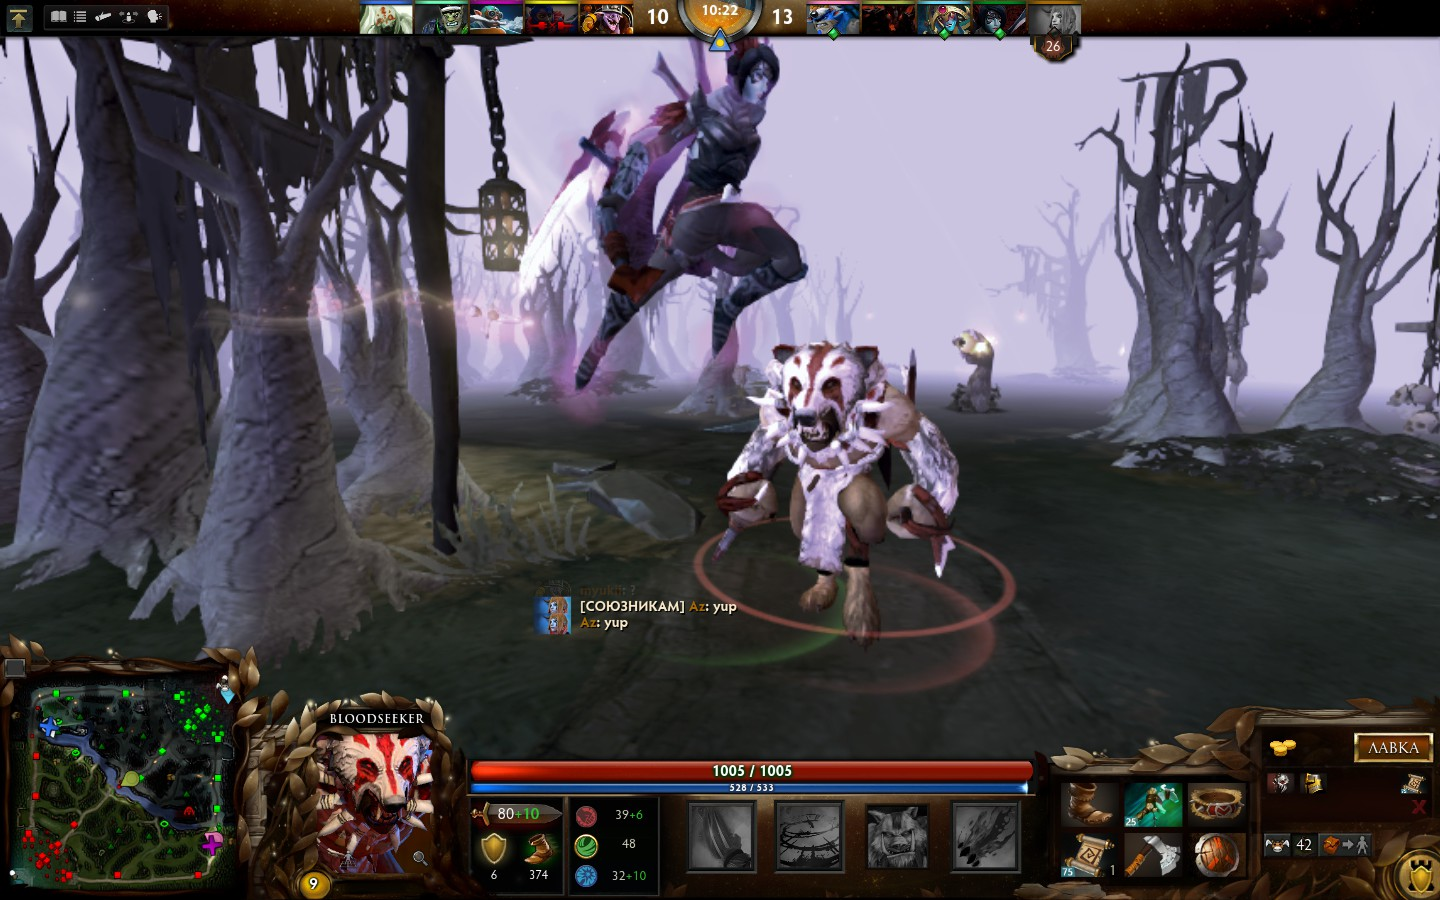 dota 2 matchmaking facts Steam workshop: dota 2 2 for some complaints this script was supposed to simulate ranked matchmaking ai not cancer matchmaking ai.